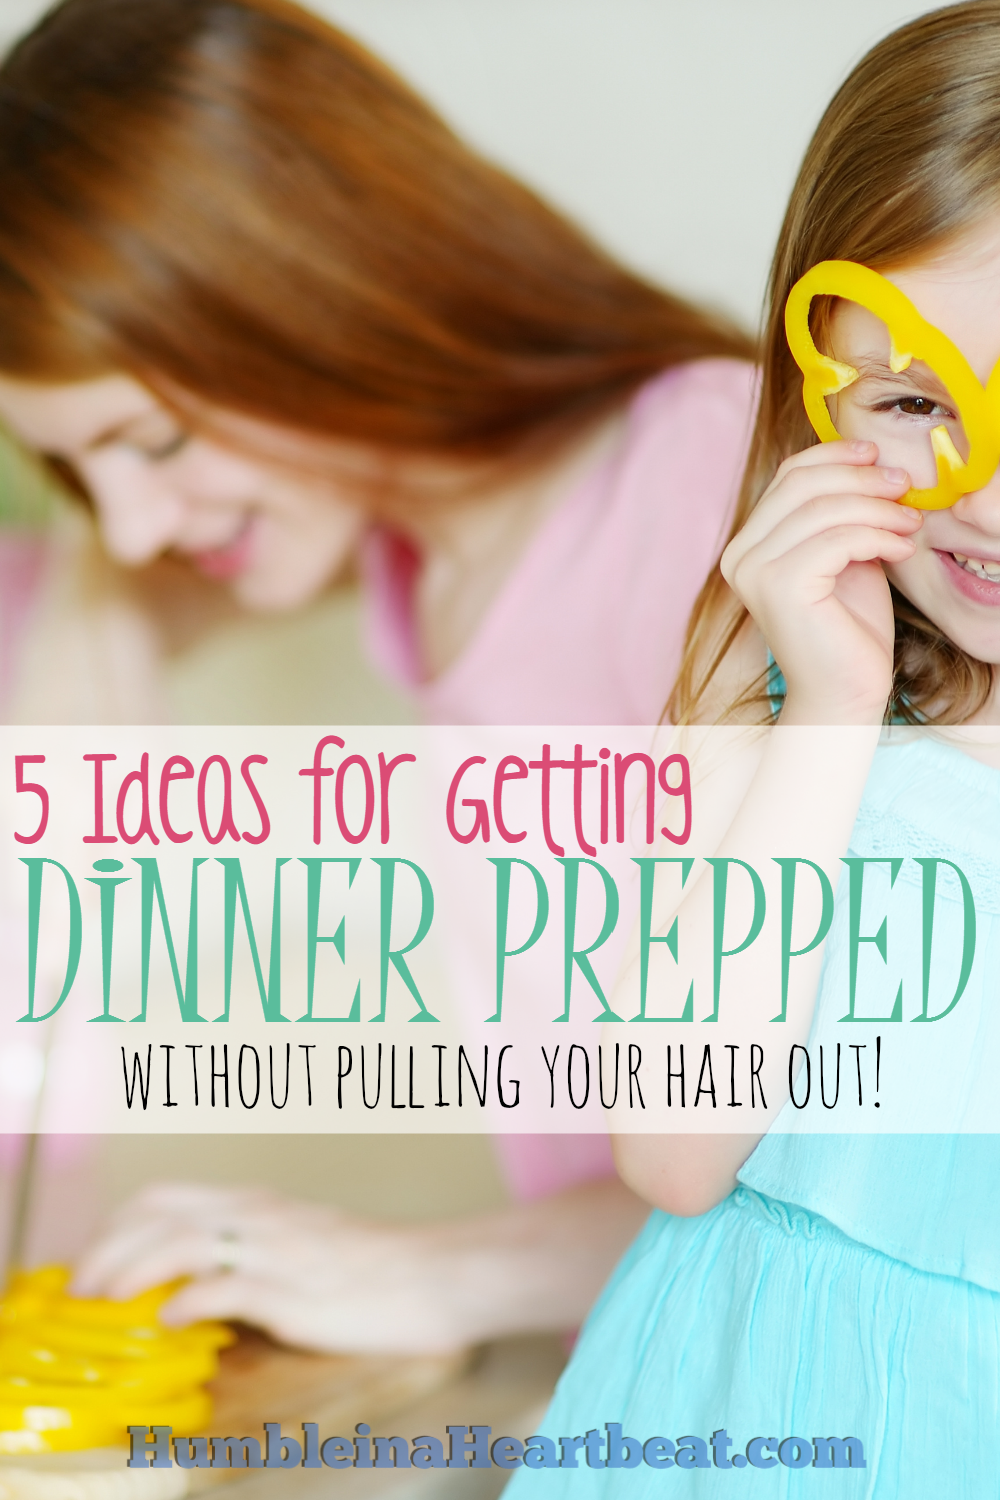 Cooking dinner while watching over young children can make any mom lose her mind! These 5 solutions will hopefully help you manage dinner prep and have happier kids (and mom!) at the same time.